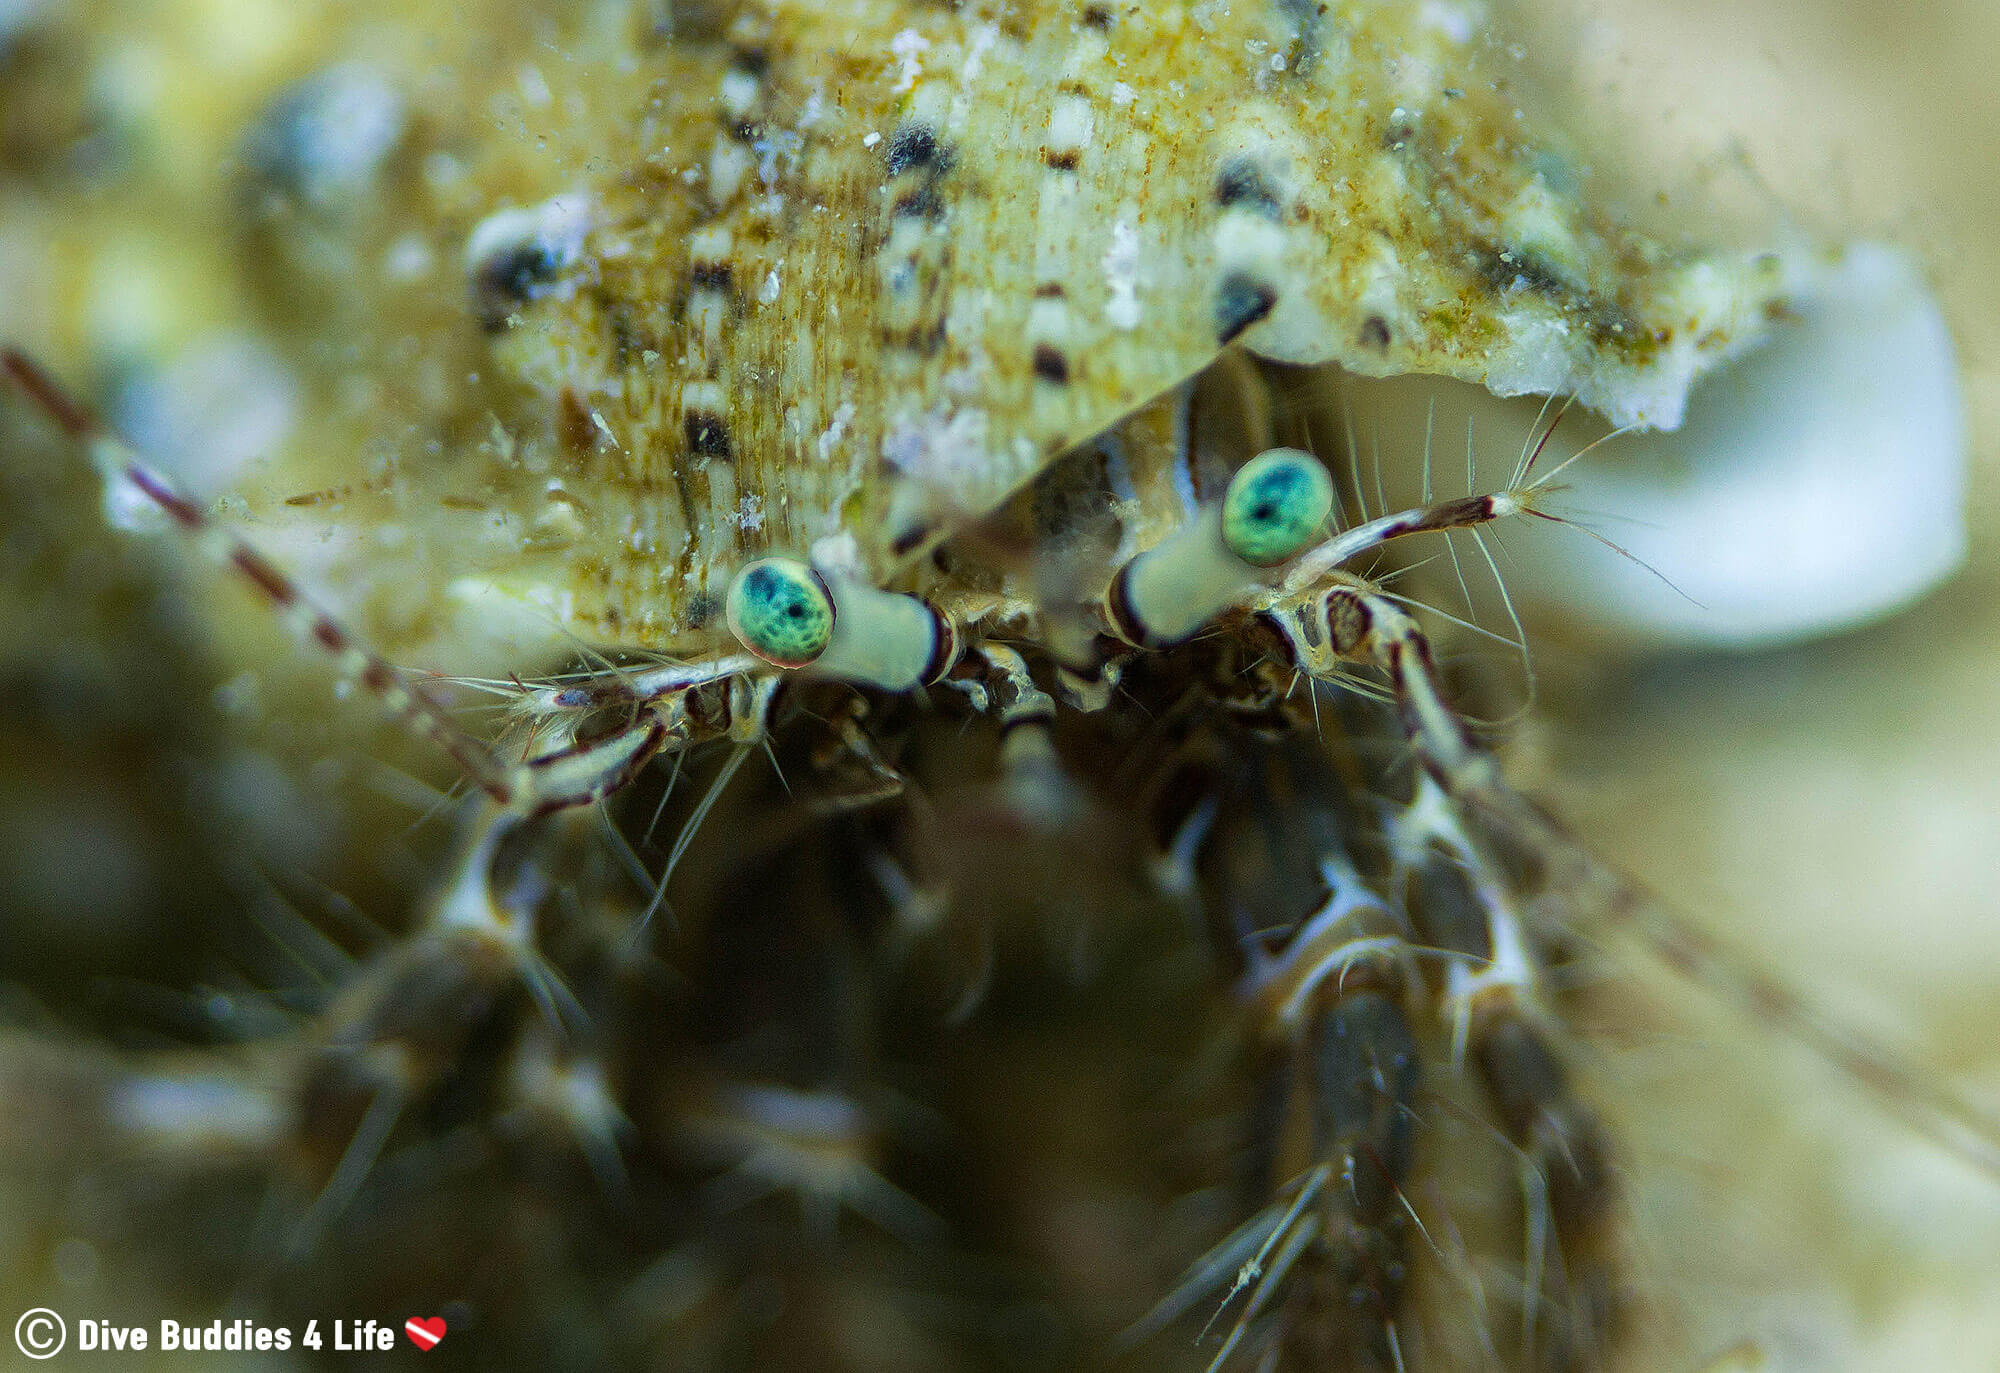 A Green Eyed Crab Checking Out My Macro Photography In Croatia